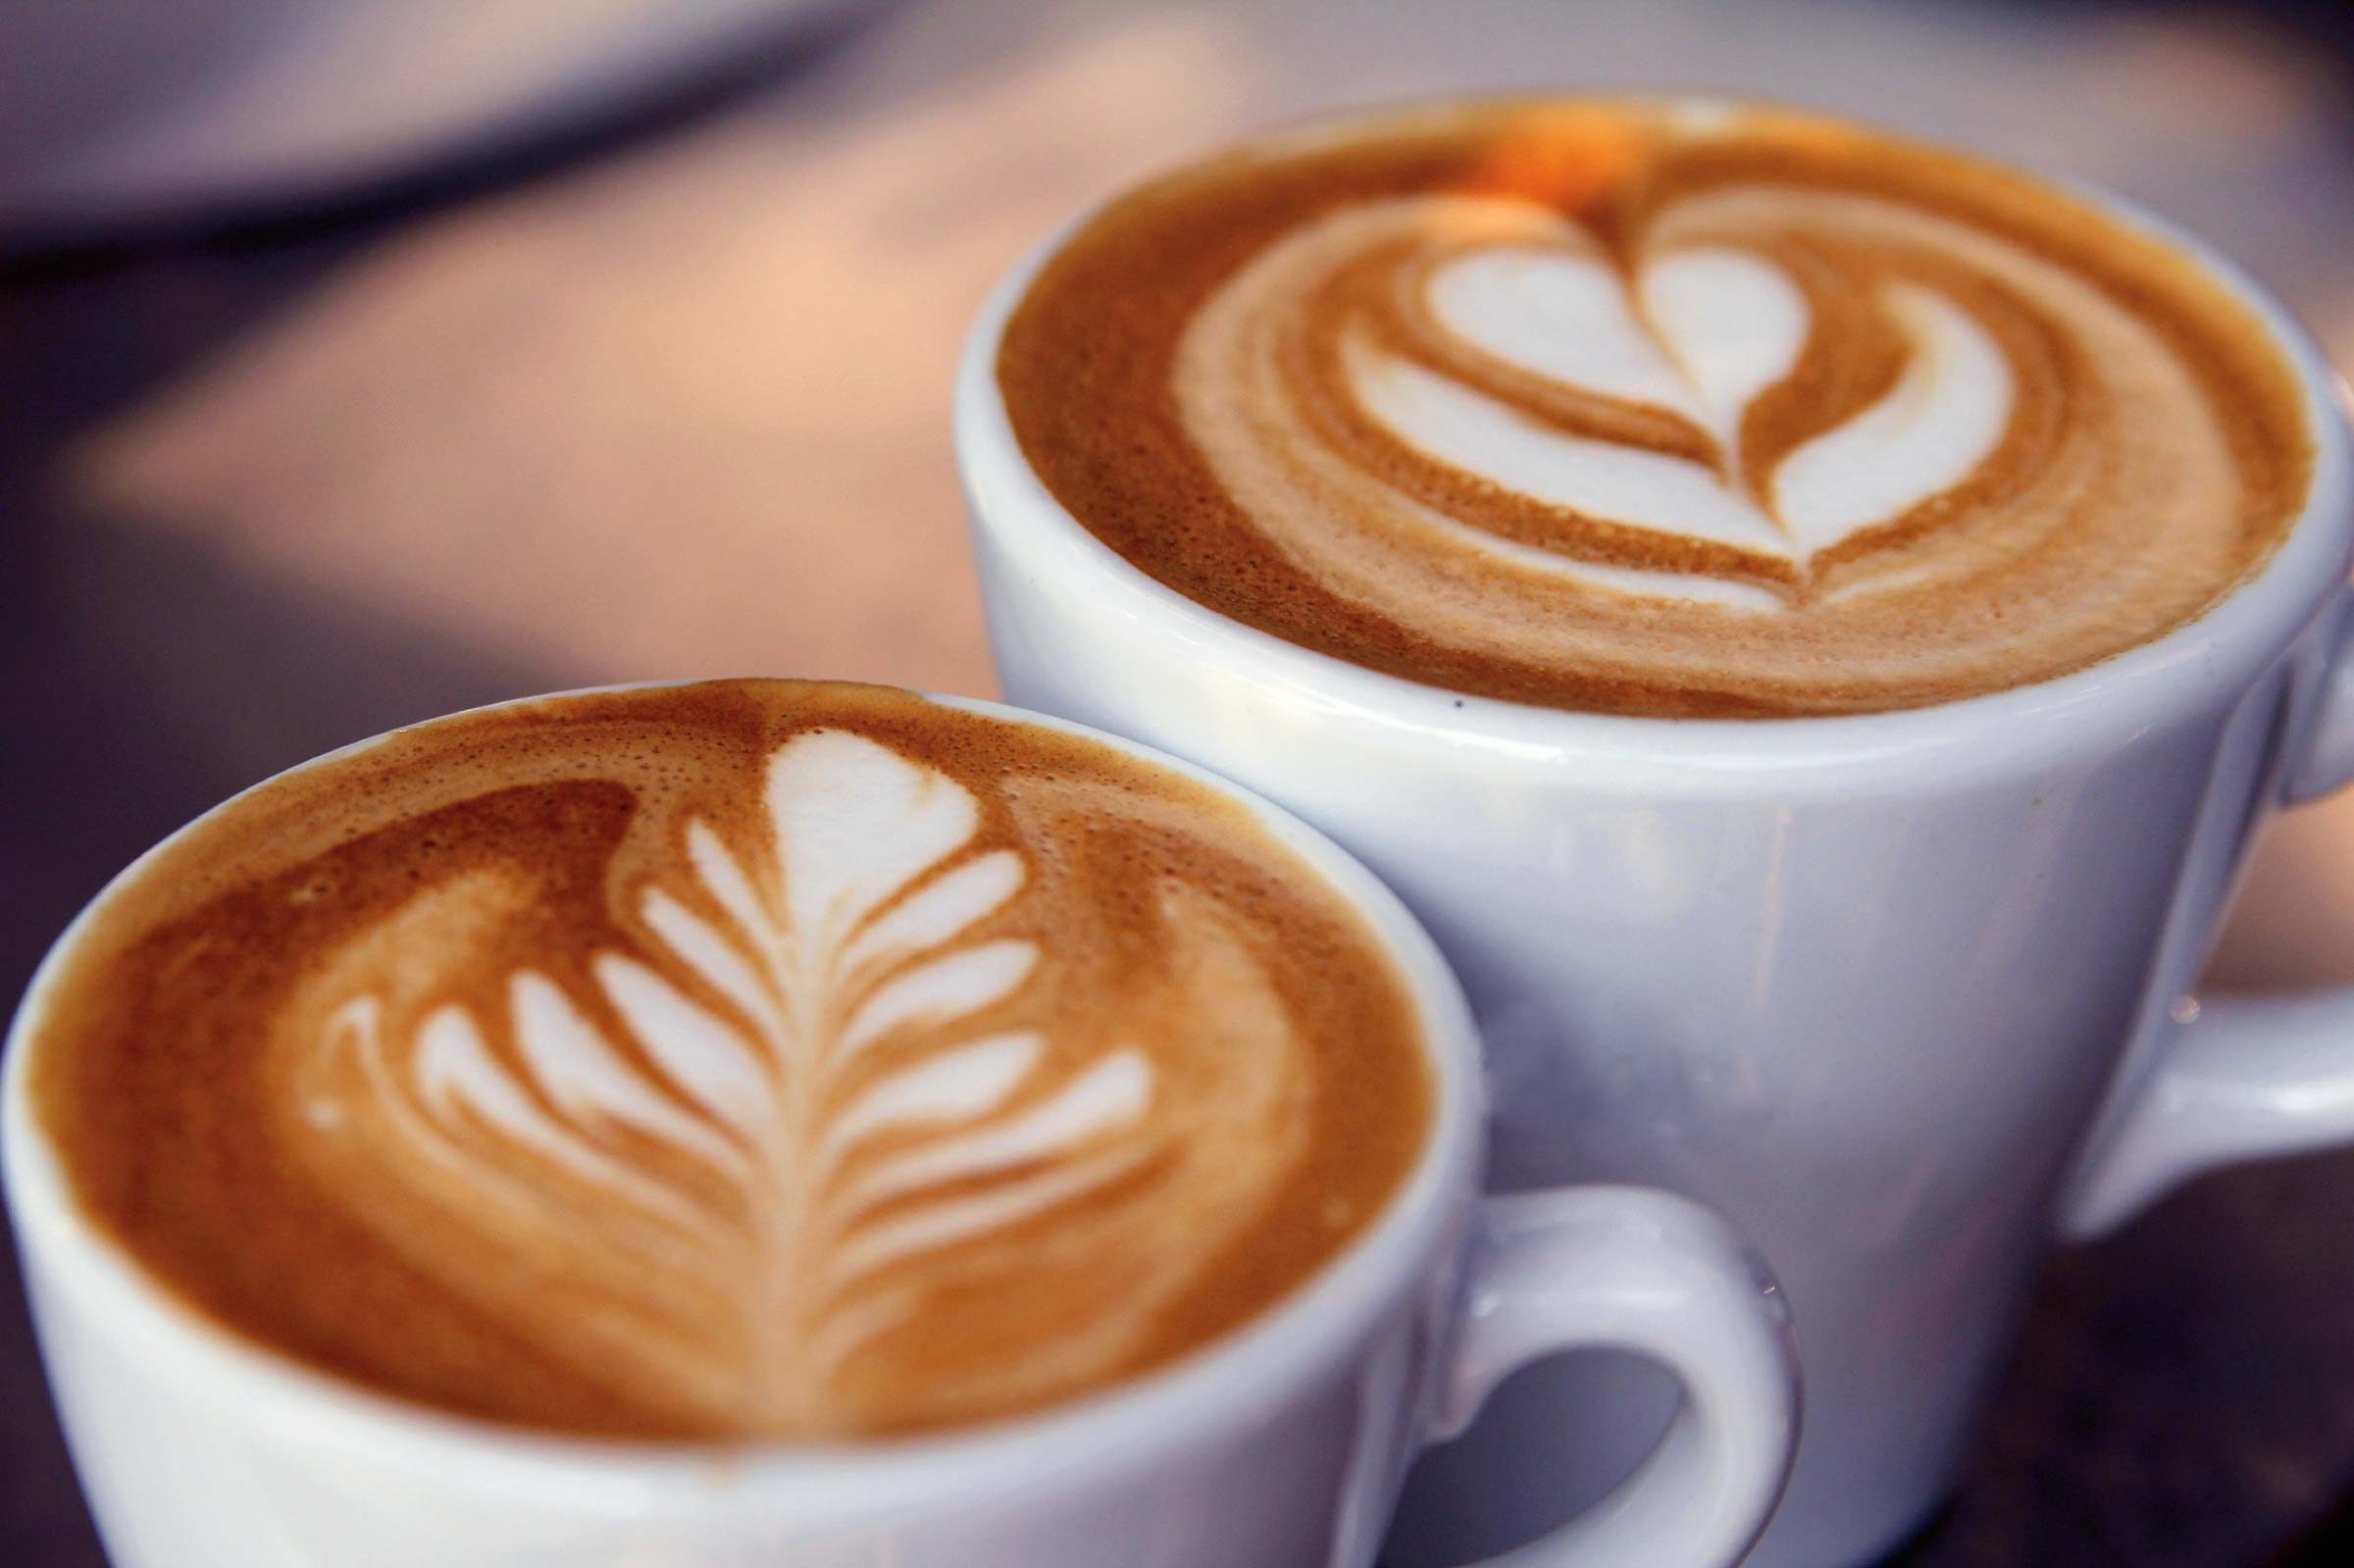 Coffee without milk i know how you feel inside i ve been there - Drinking Two Quad Shot 22oz Vanilla Lattes Every Day Is Bad For You